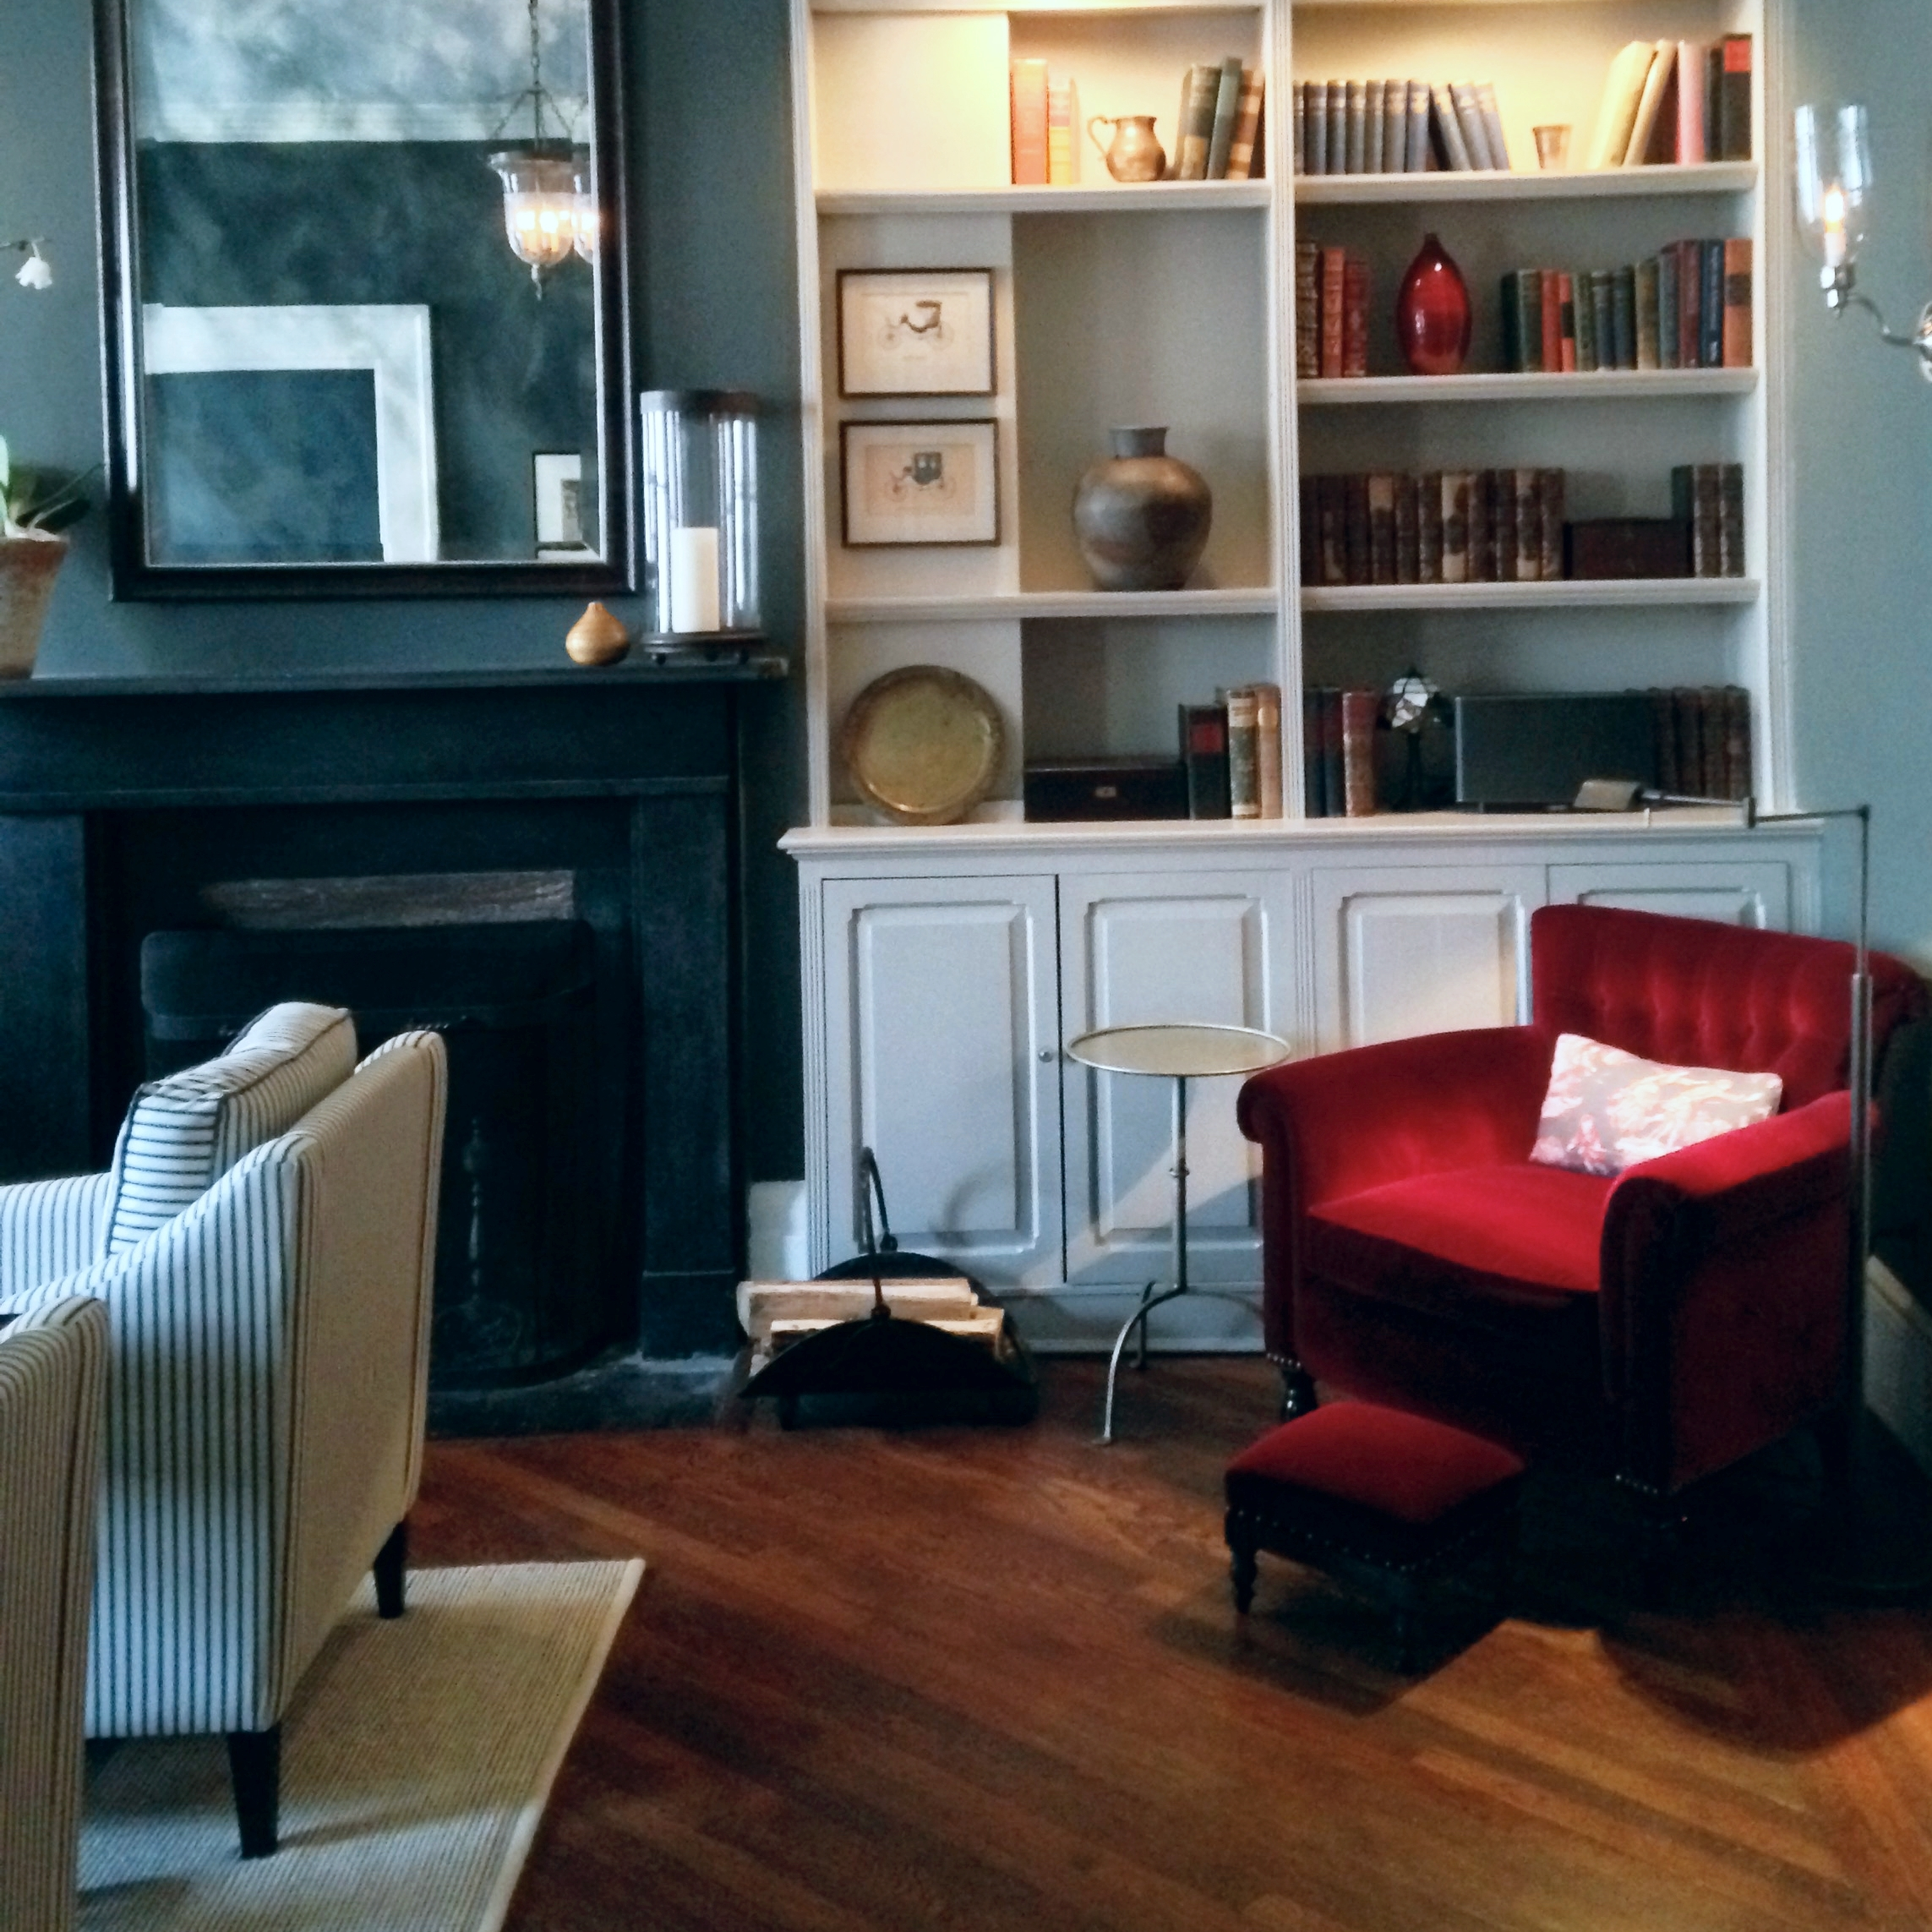 Waverly Place Apartment -